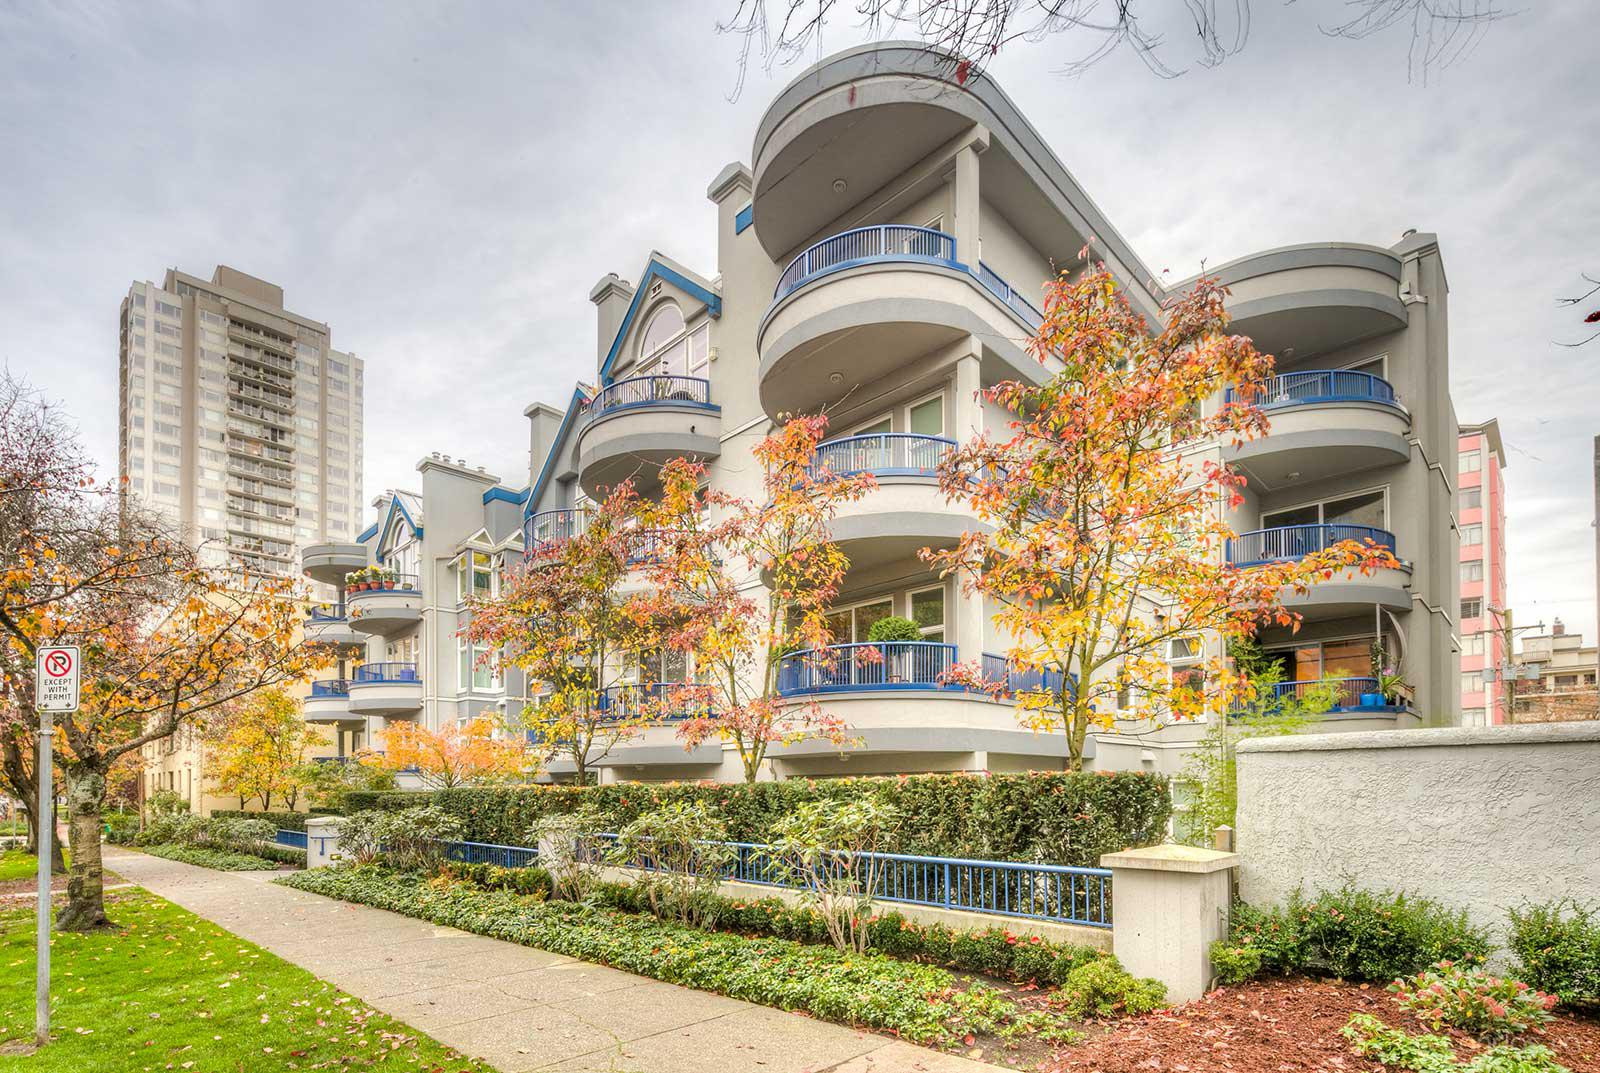 Windgate at 1924 Comox St, Vancouver 0